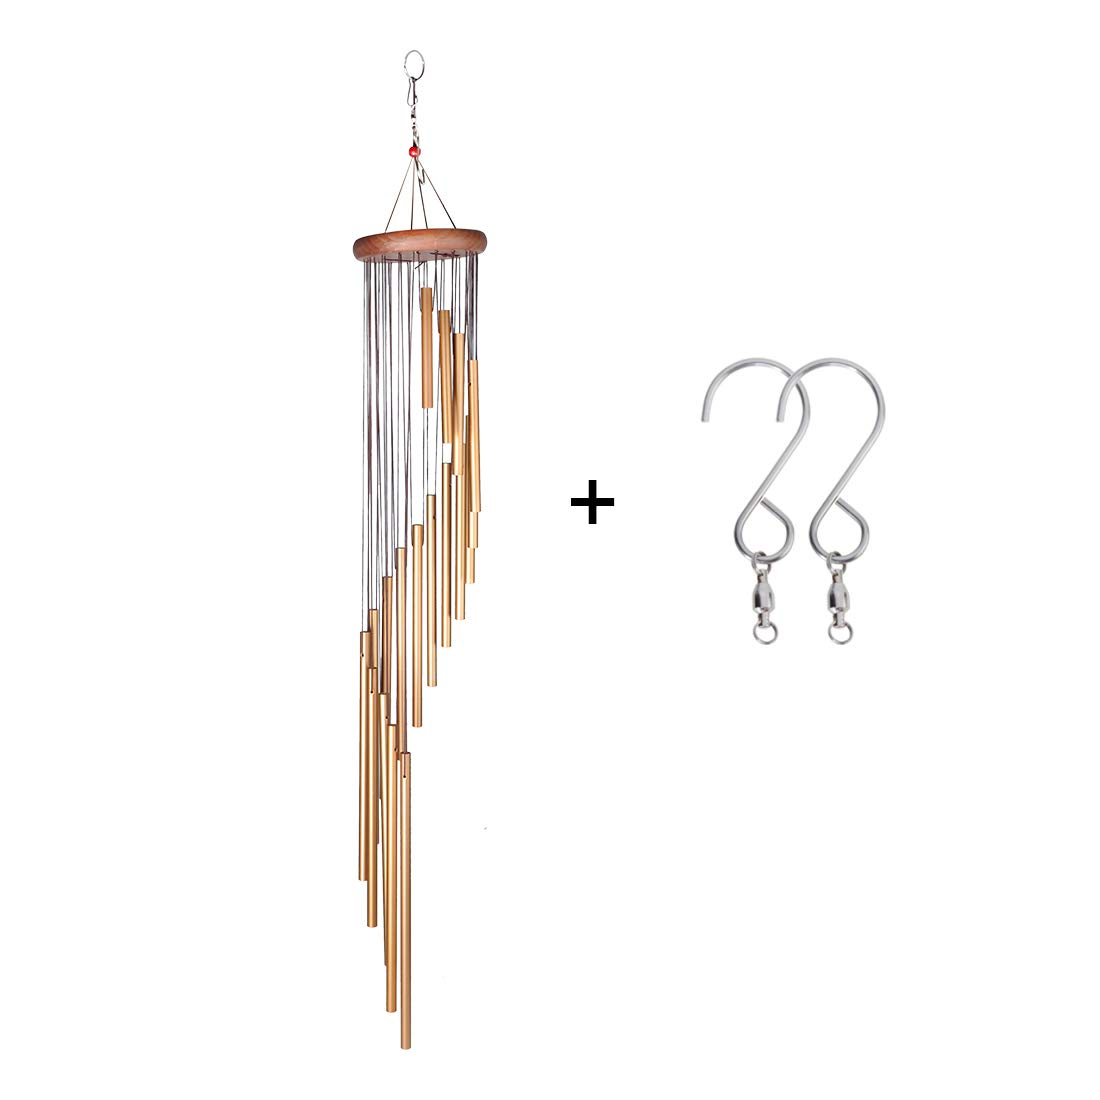 DEWEL Wind Chimes Amazing Grace Wind Chime with 18 Aluminum Alloy Tubes 36'' Large Wind Chimes with Free 2 Pack Hooks Home Decoration for Indoor Outdoor Patio Lawn Garden Balcony Porch Backyard